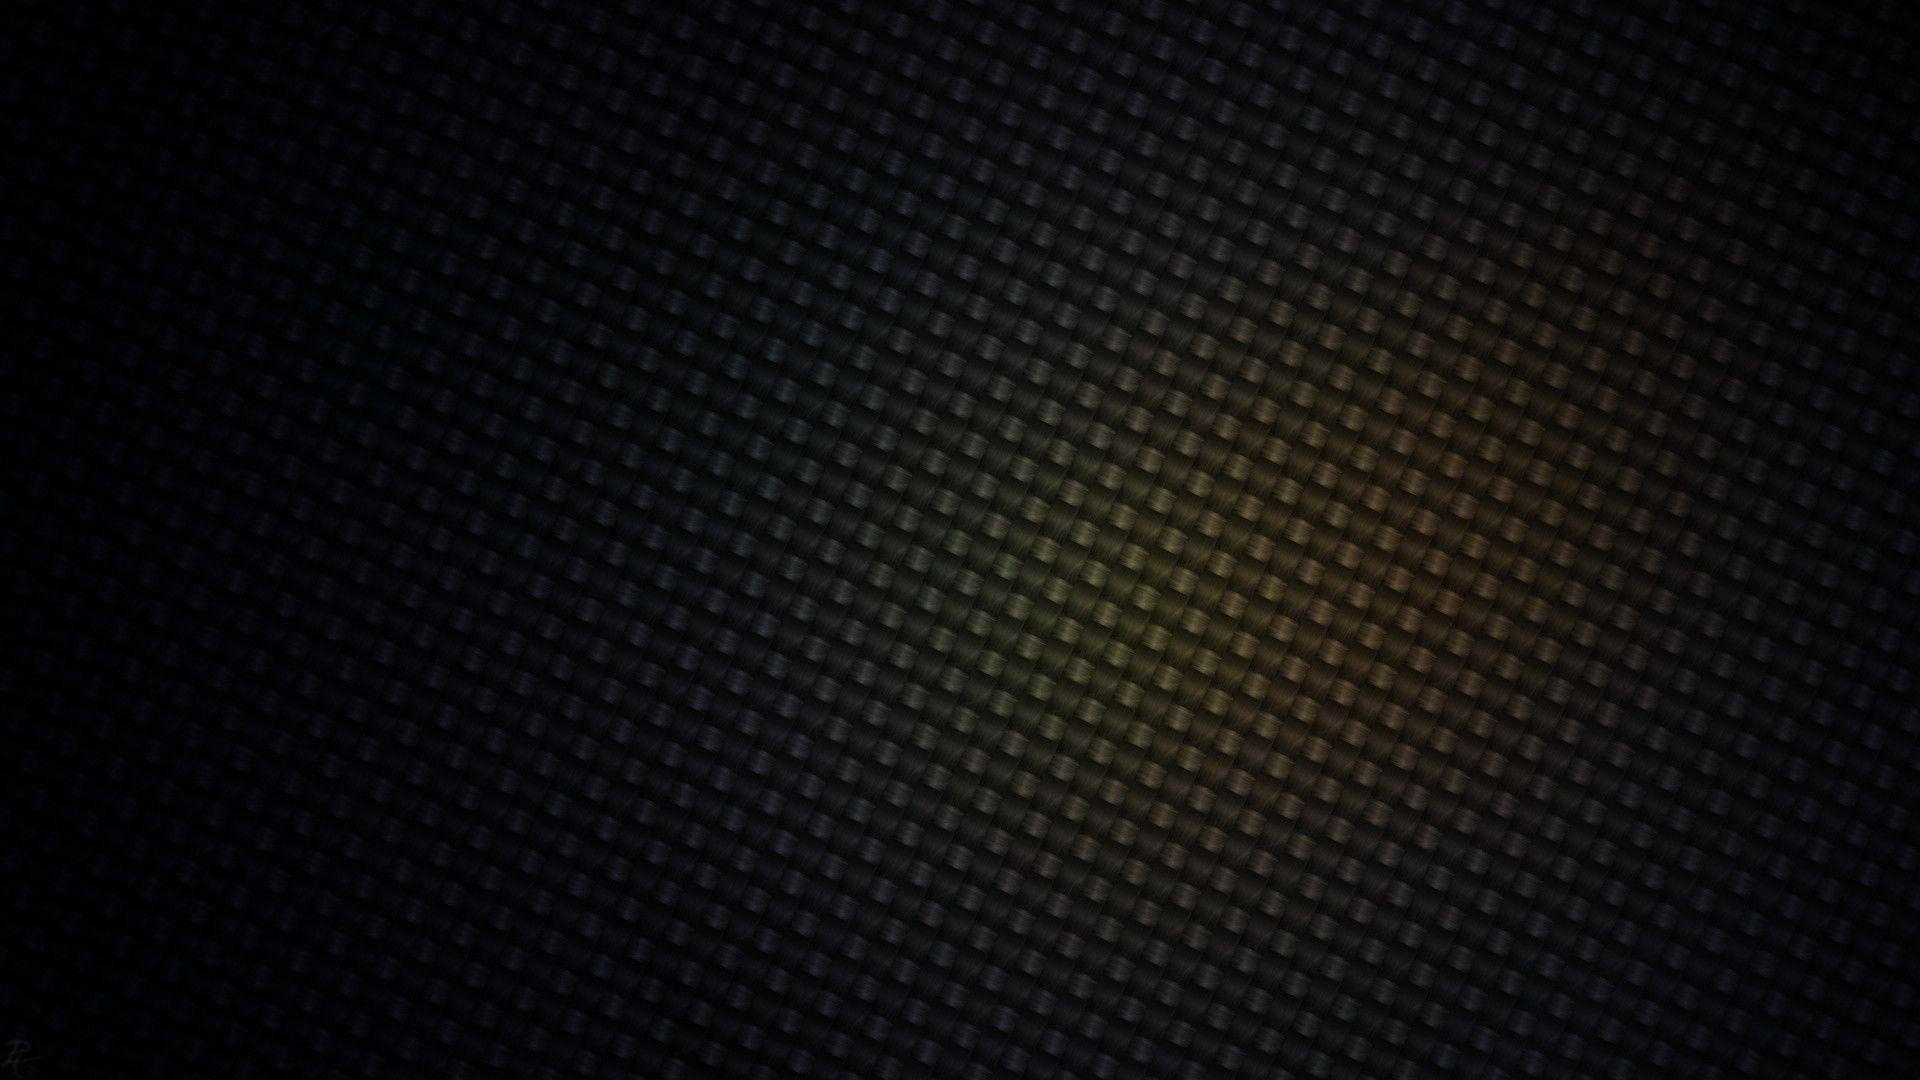 hd carbon fiber wallpaper (79+ images)